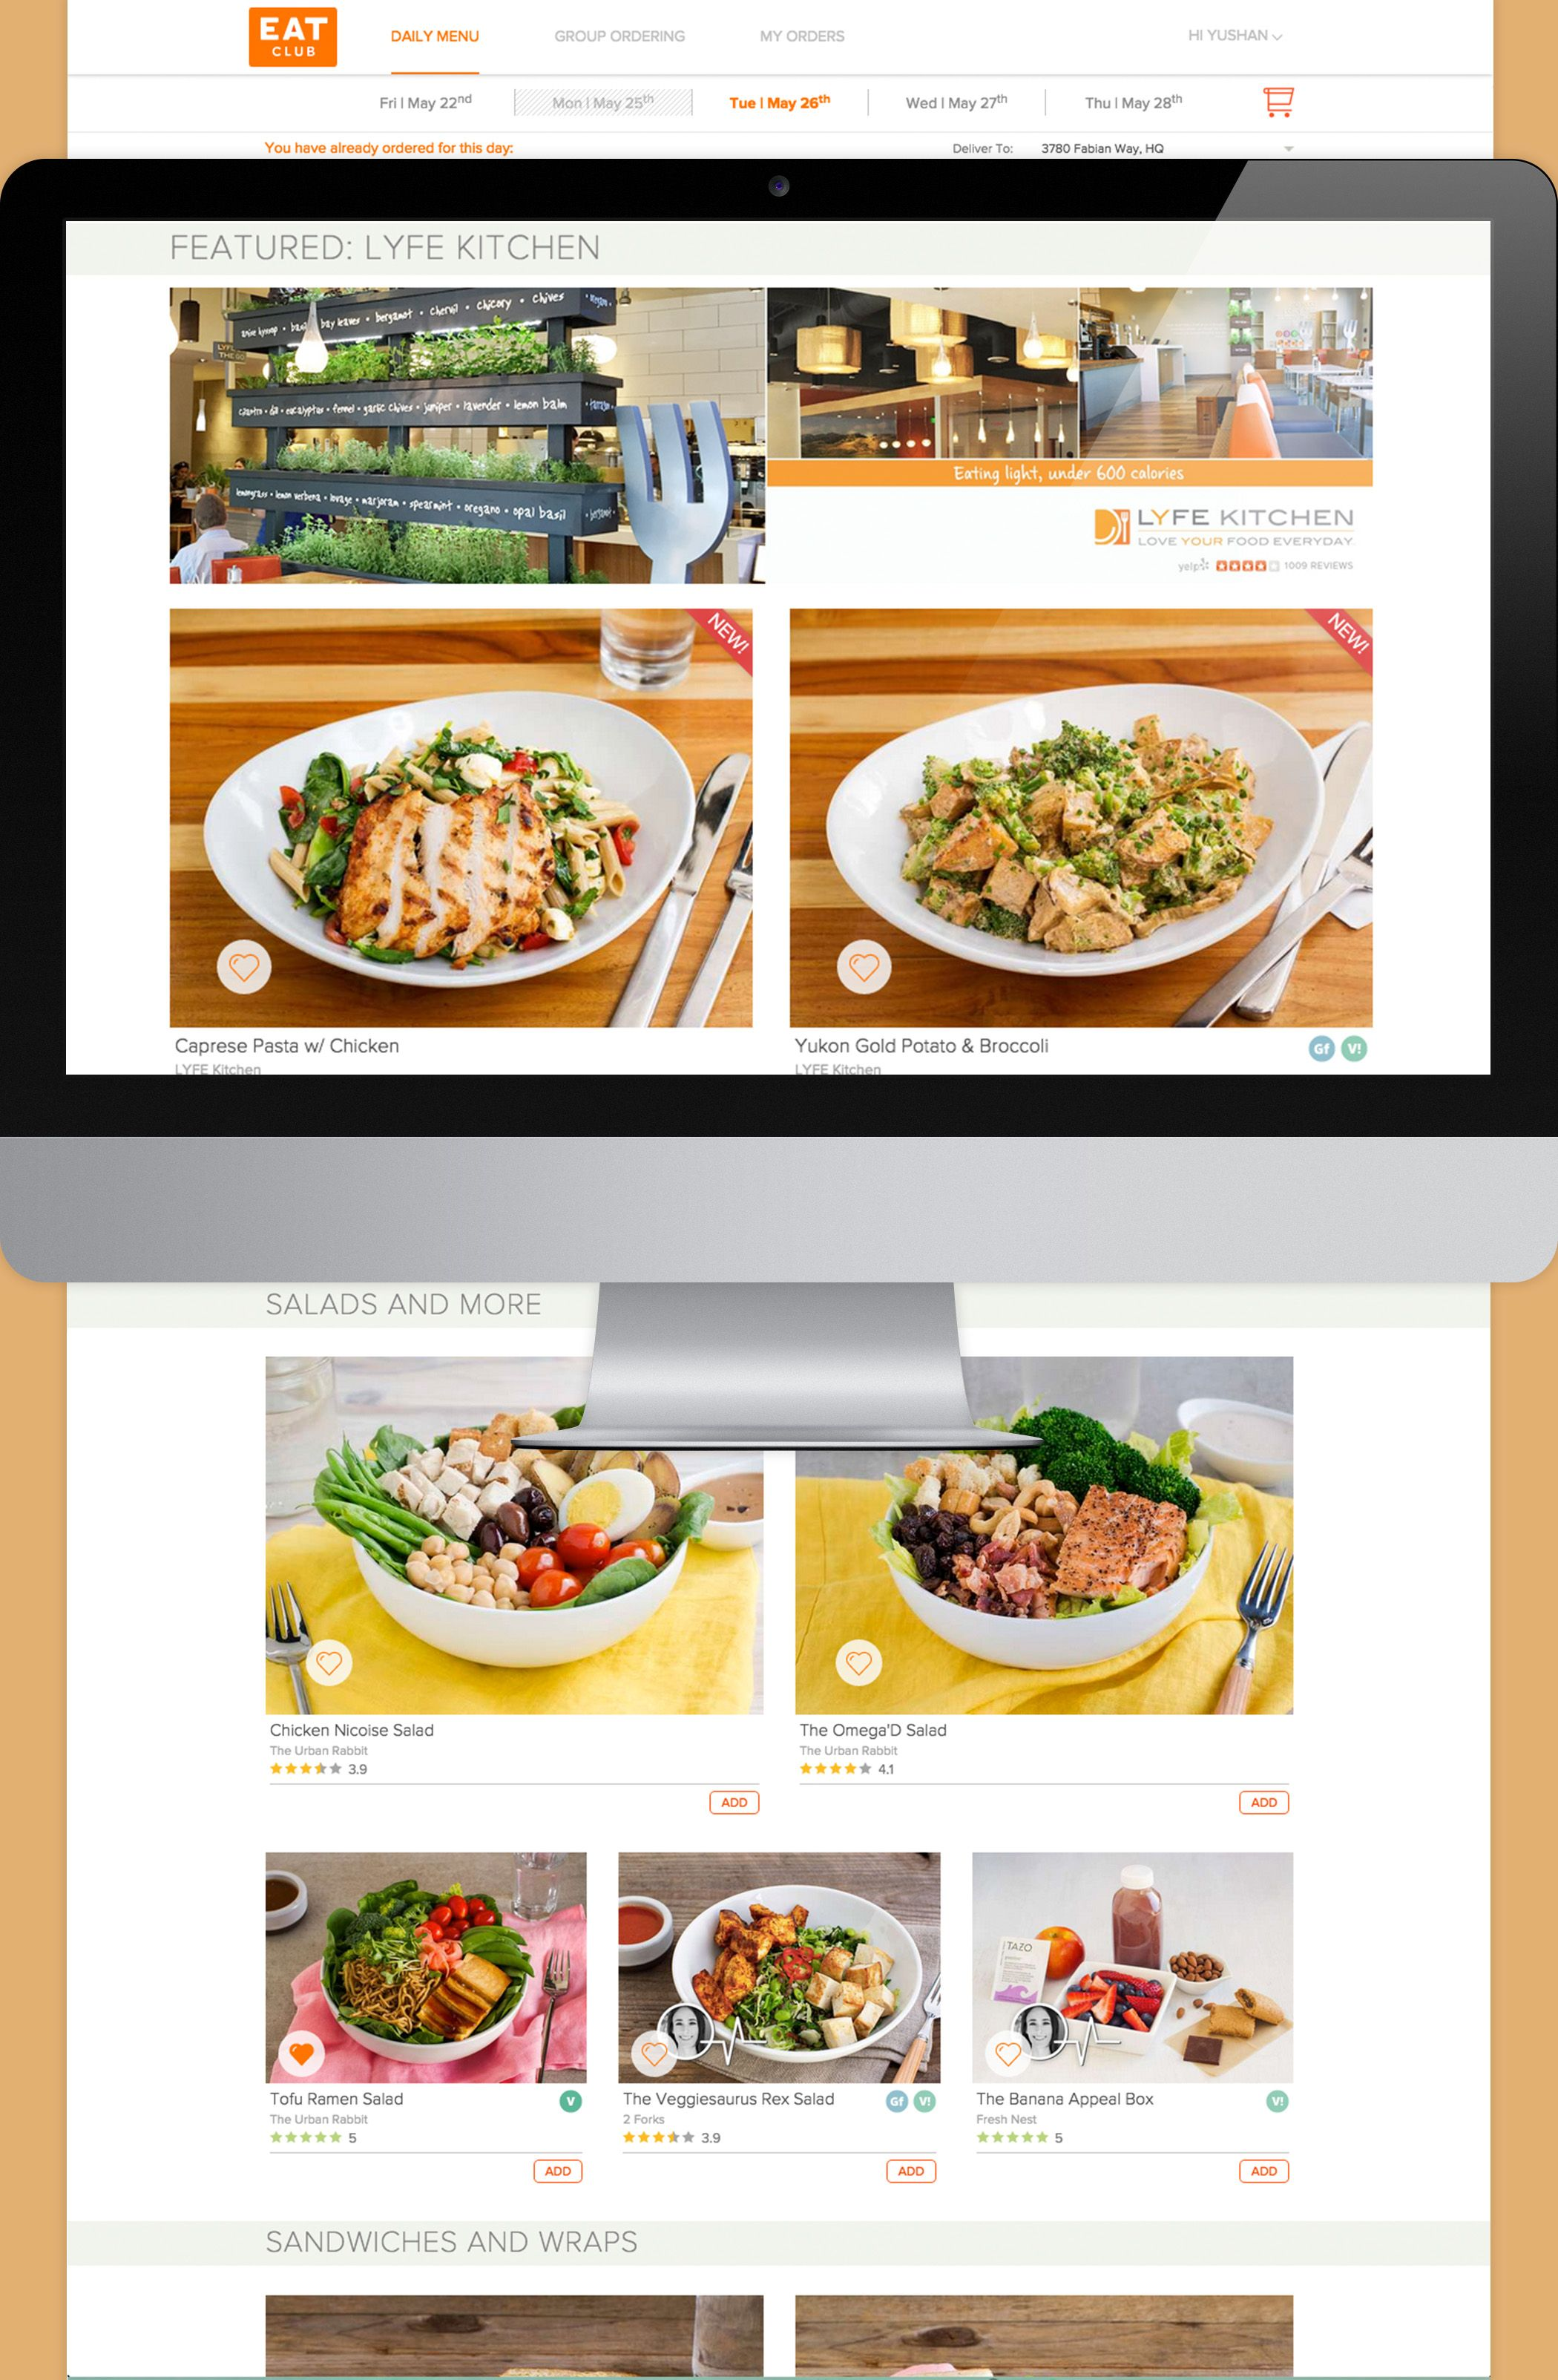 Eat Club Lunch Menu Featured With Lyfe Kitchen Eat Office